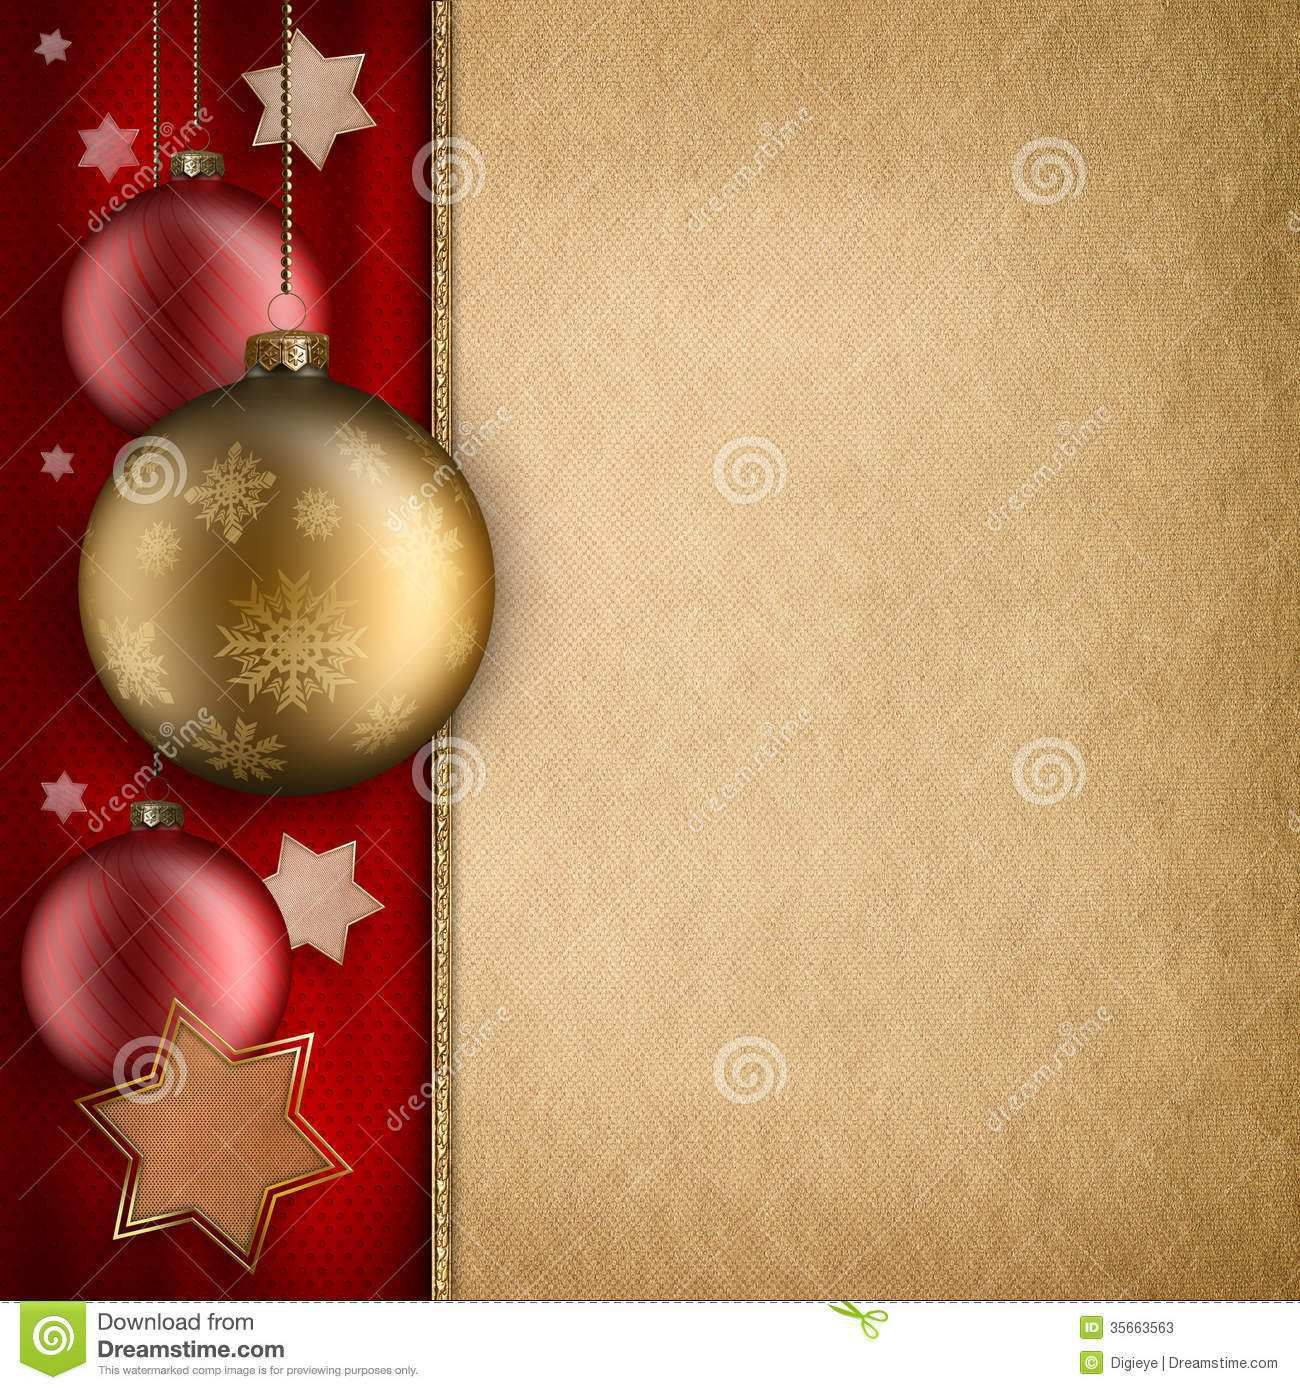 001 Fascinating Free Download Holiday Card Template High Definition Full